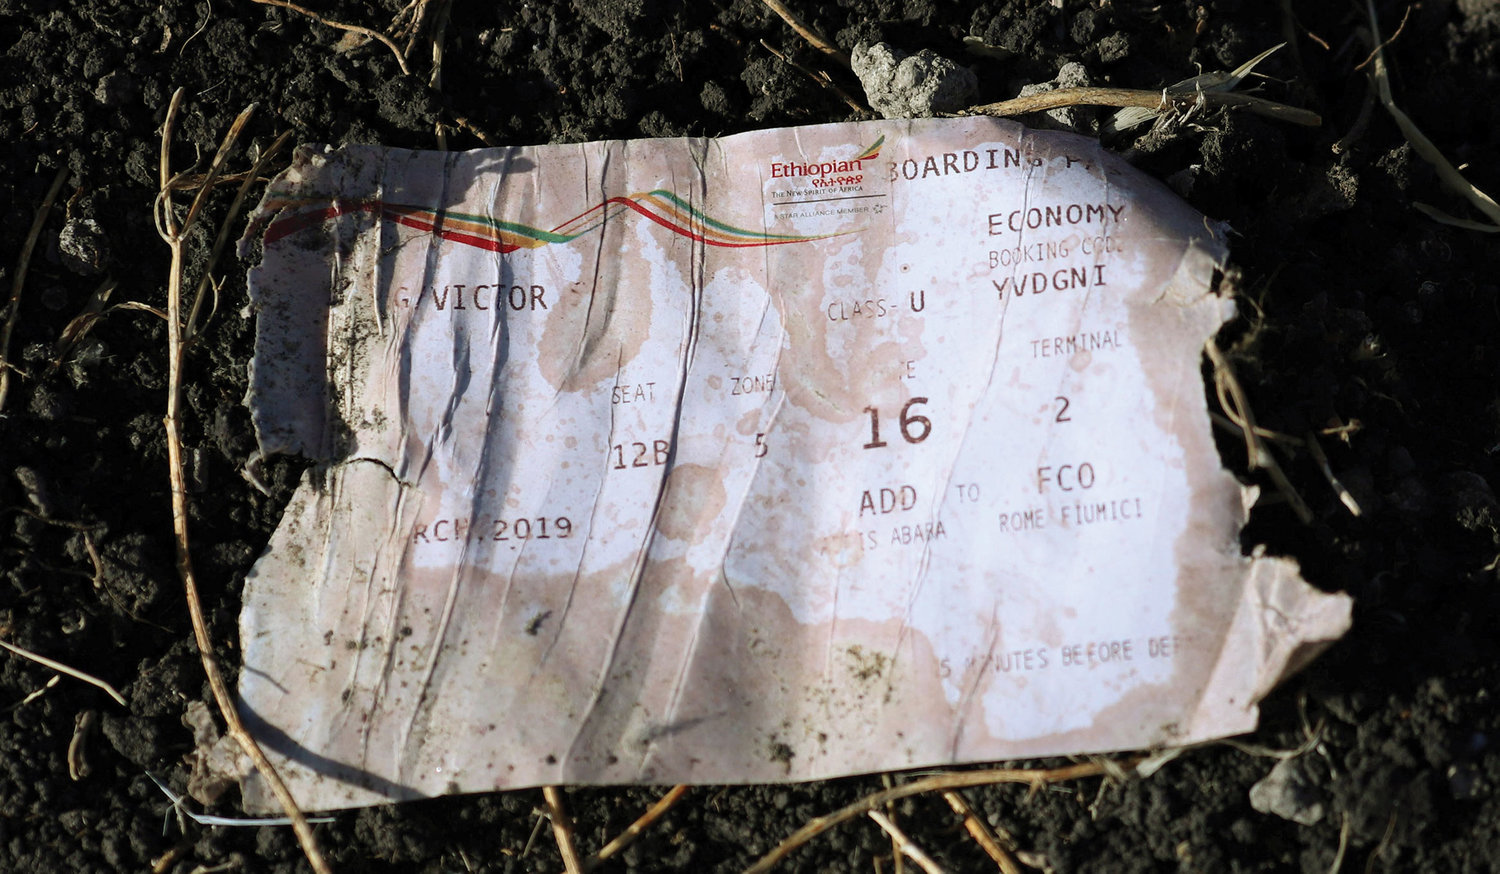 A boarding pass is seen at the scene of the plane crash March 11.